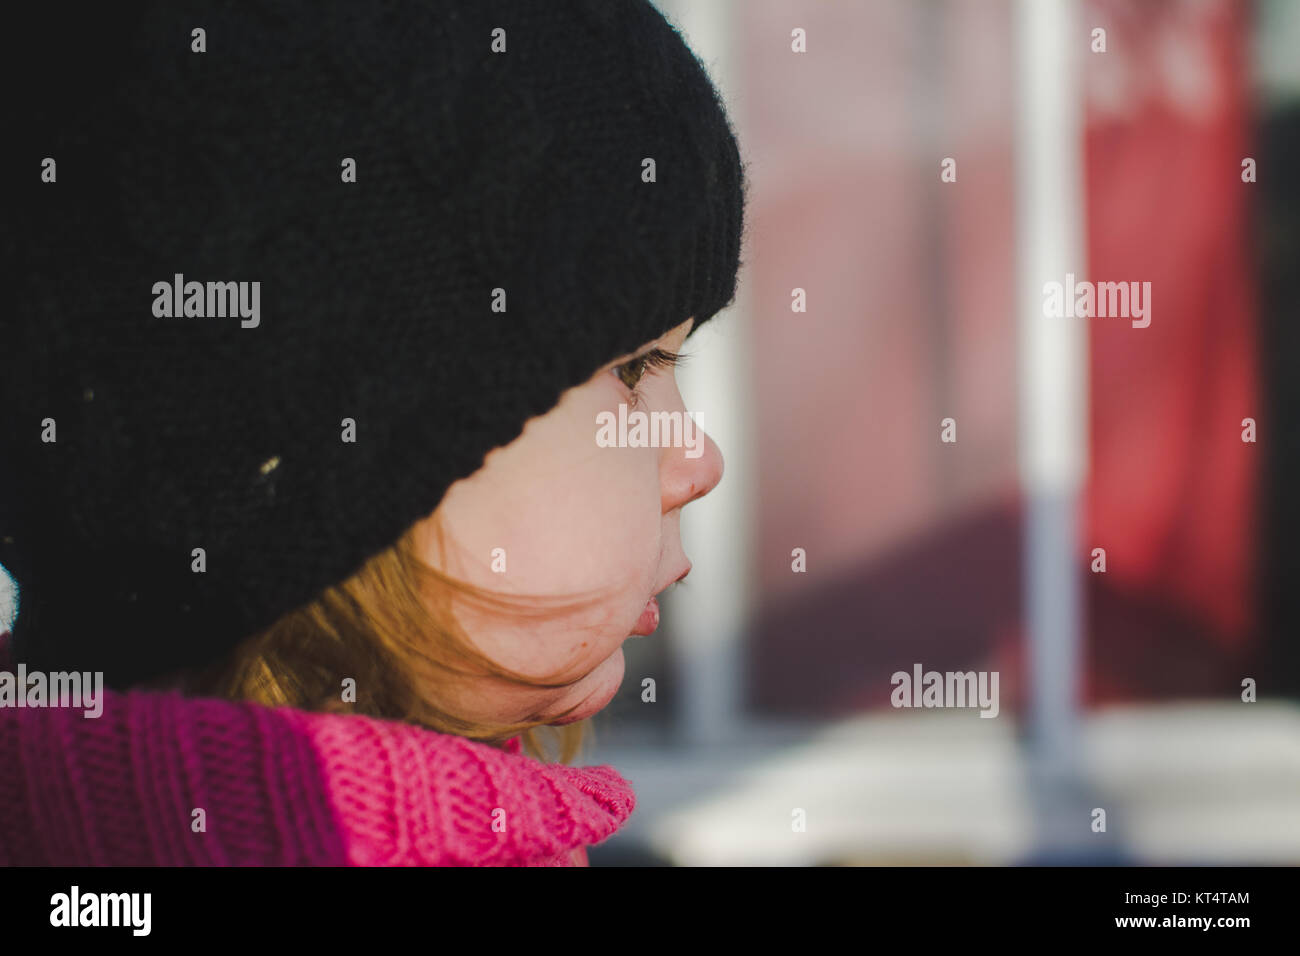 Close up of a toddler's face wearing a winter hat. Stock Photo